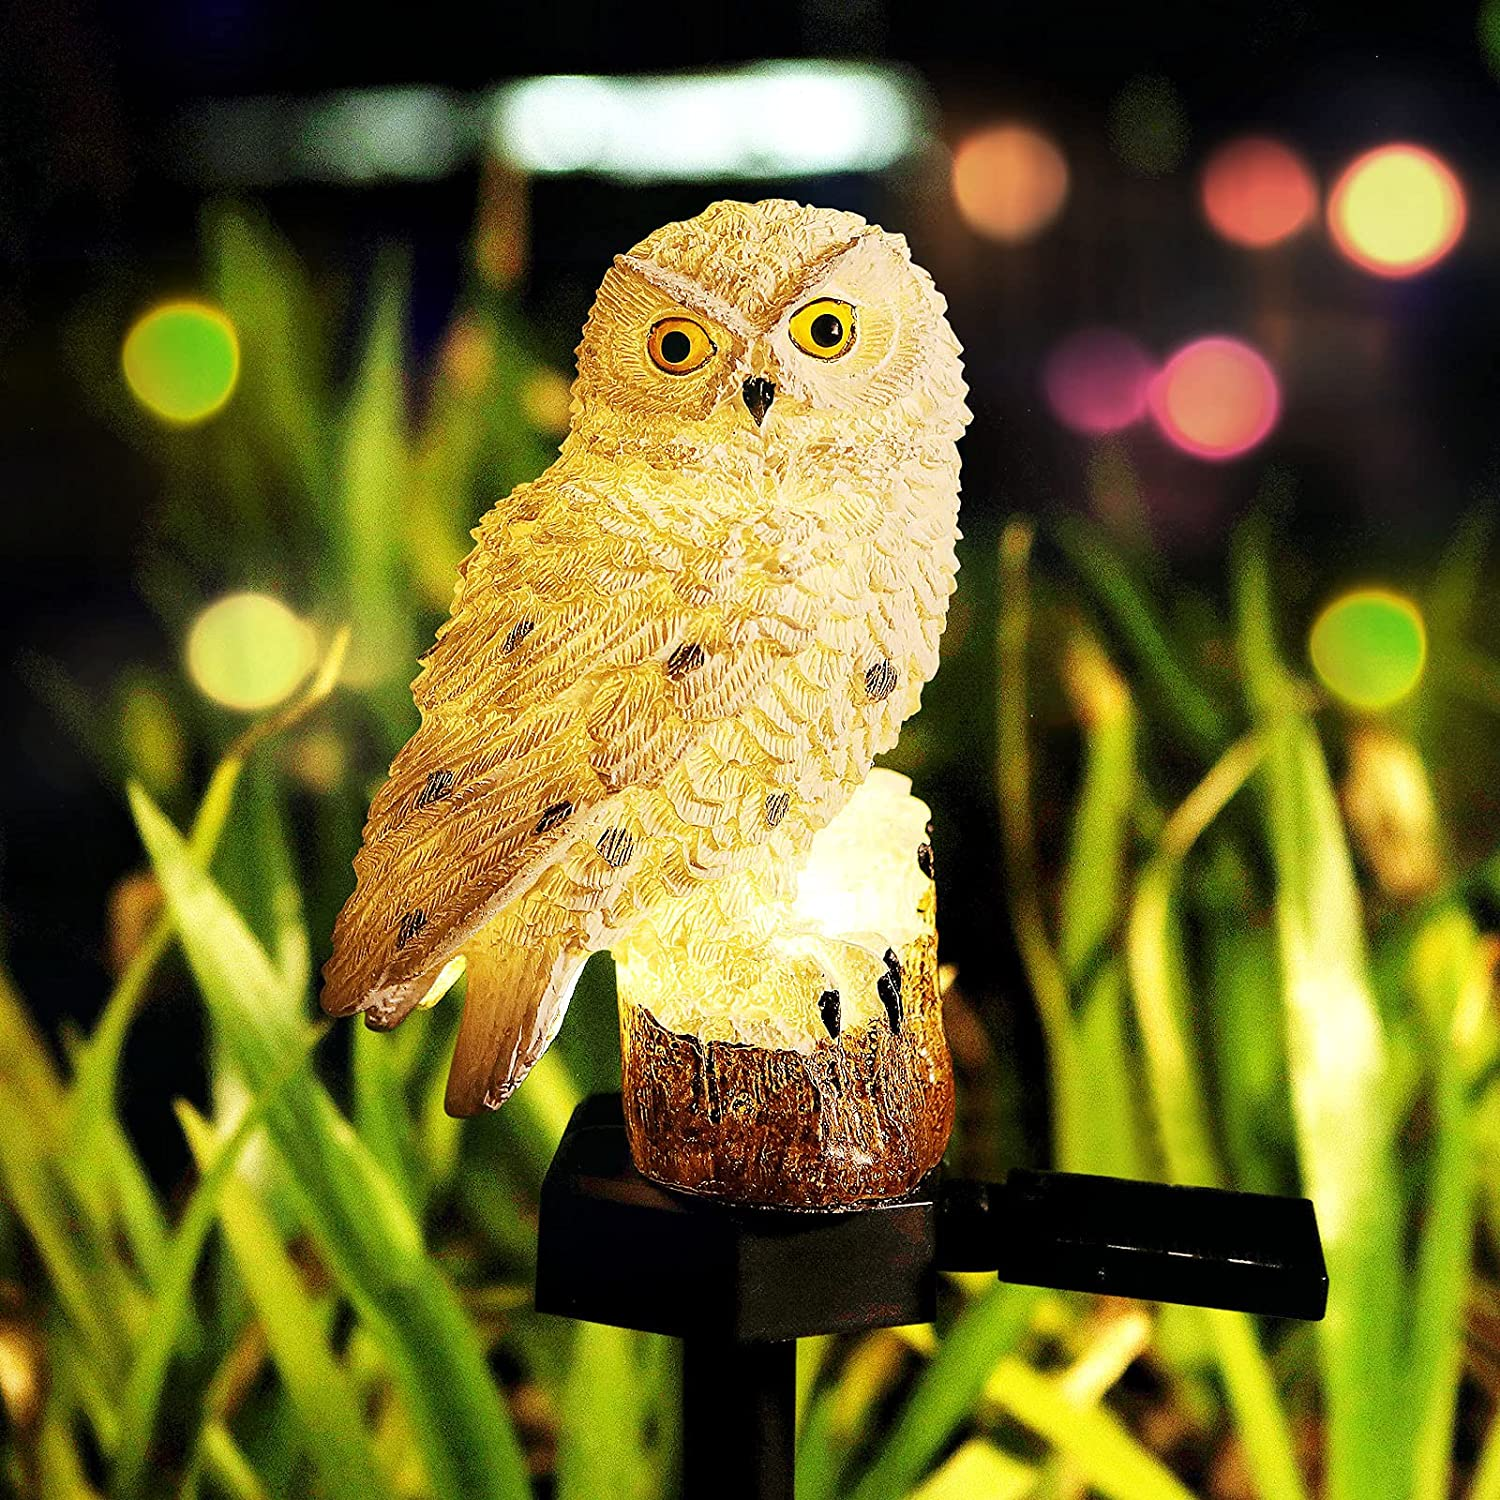 Solar Lights Outdoor Garden, E-Kong Resin Owl Solar Powered Lights with Stake, Waterproof Garden Decorative Lights for Landscape Patio Yard Pathway Decor